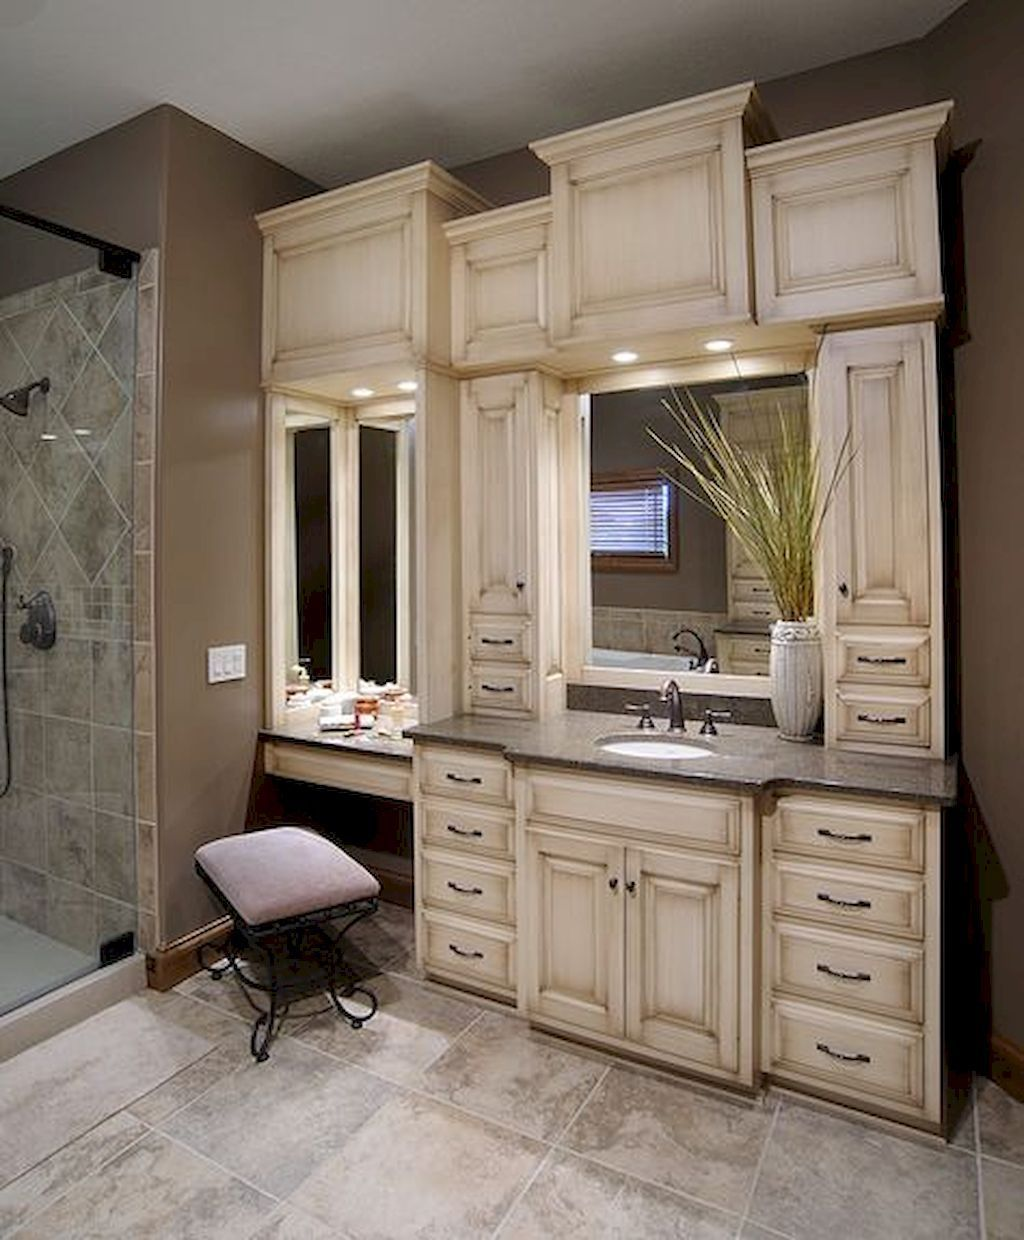 Gorgeous bathroom vanity mirror design ideas bathroom vanities